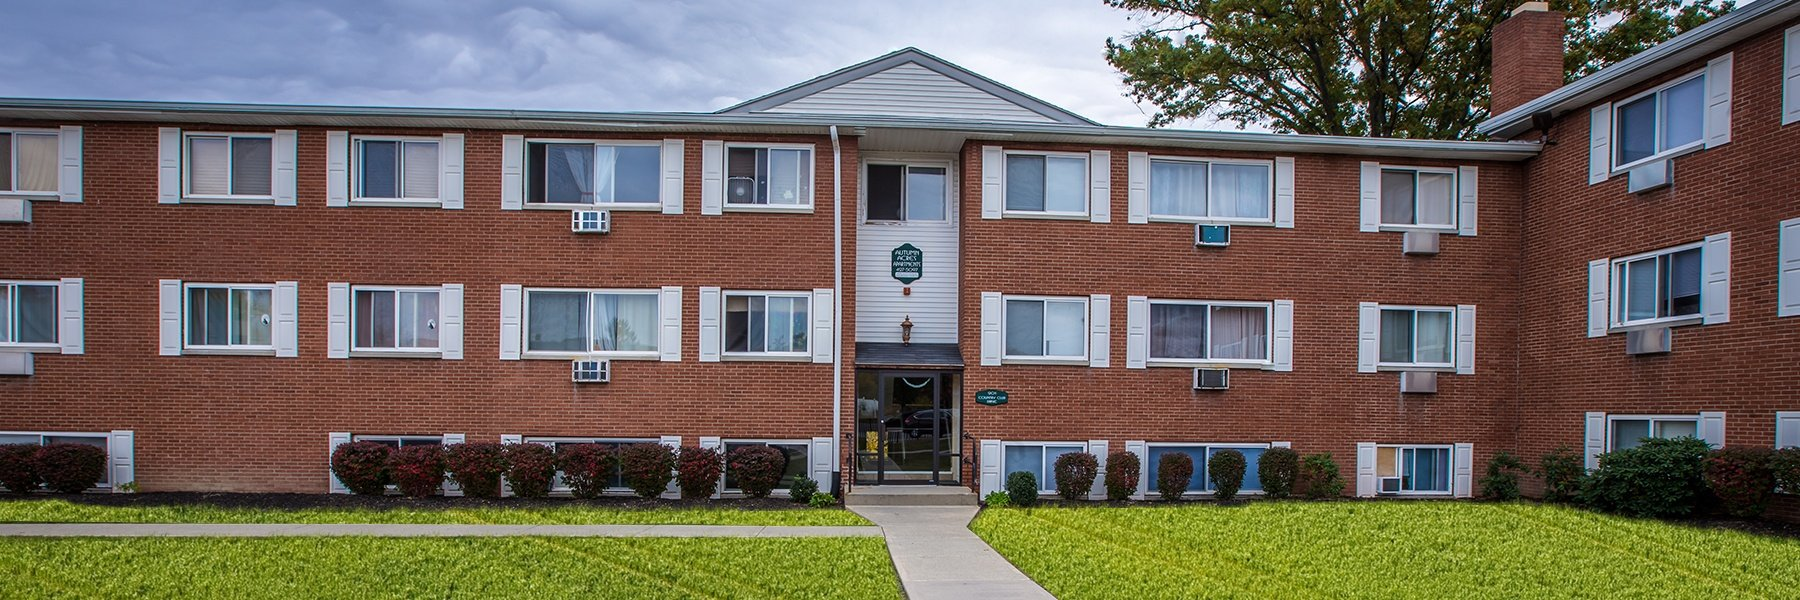 Autumn Acres Apartments For Rent in Maybrook, NY Building View